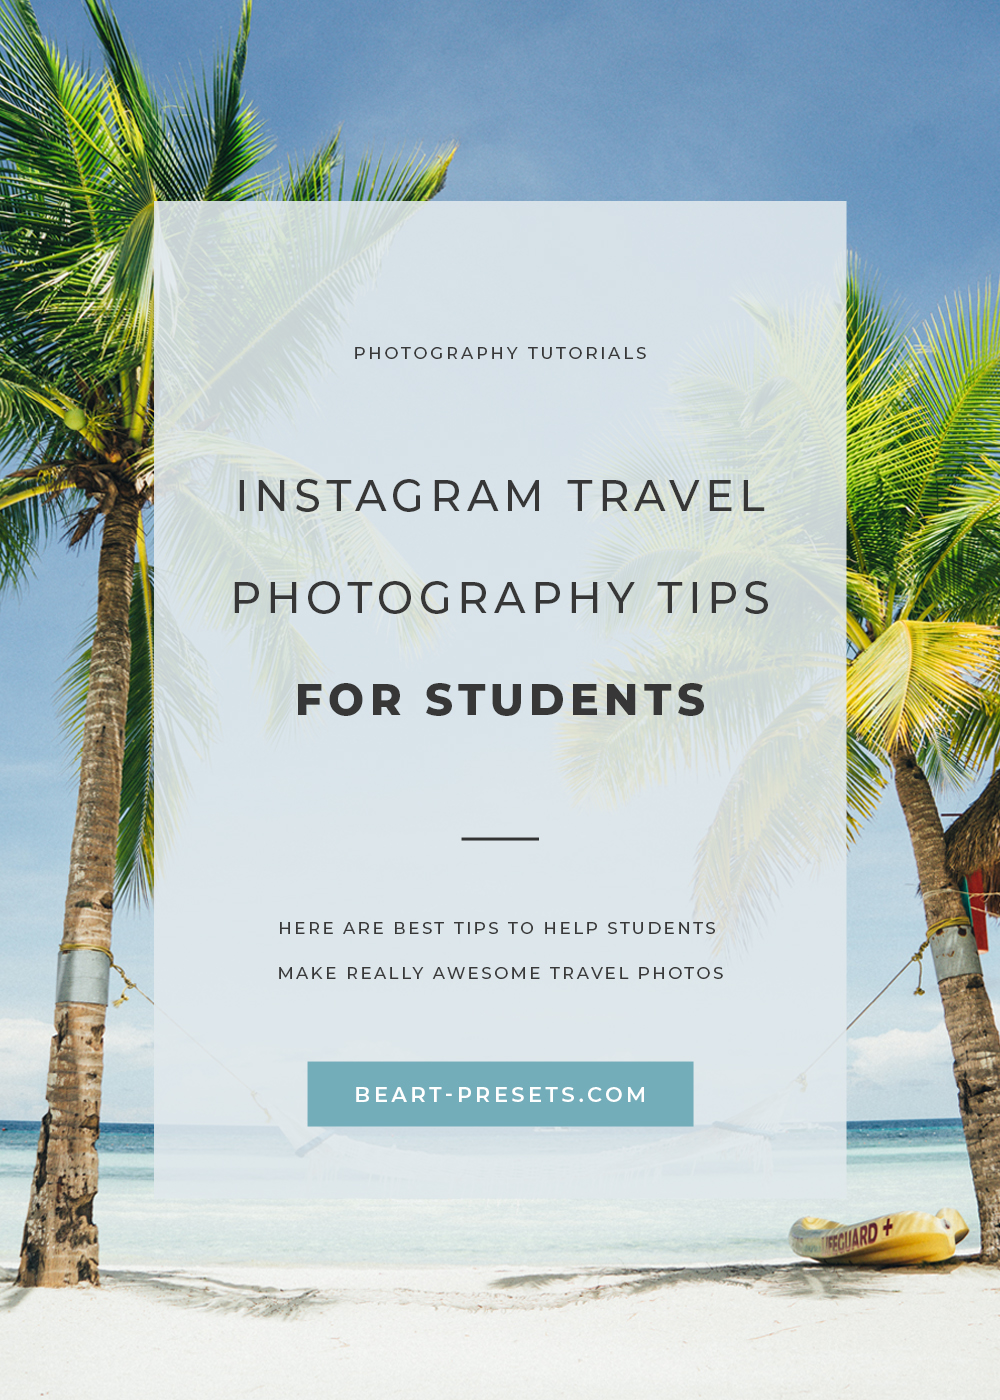 Instagram Travel Photography Tips for Students